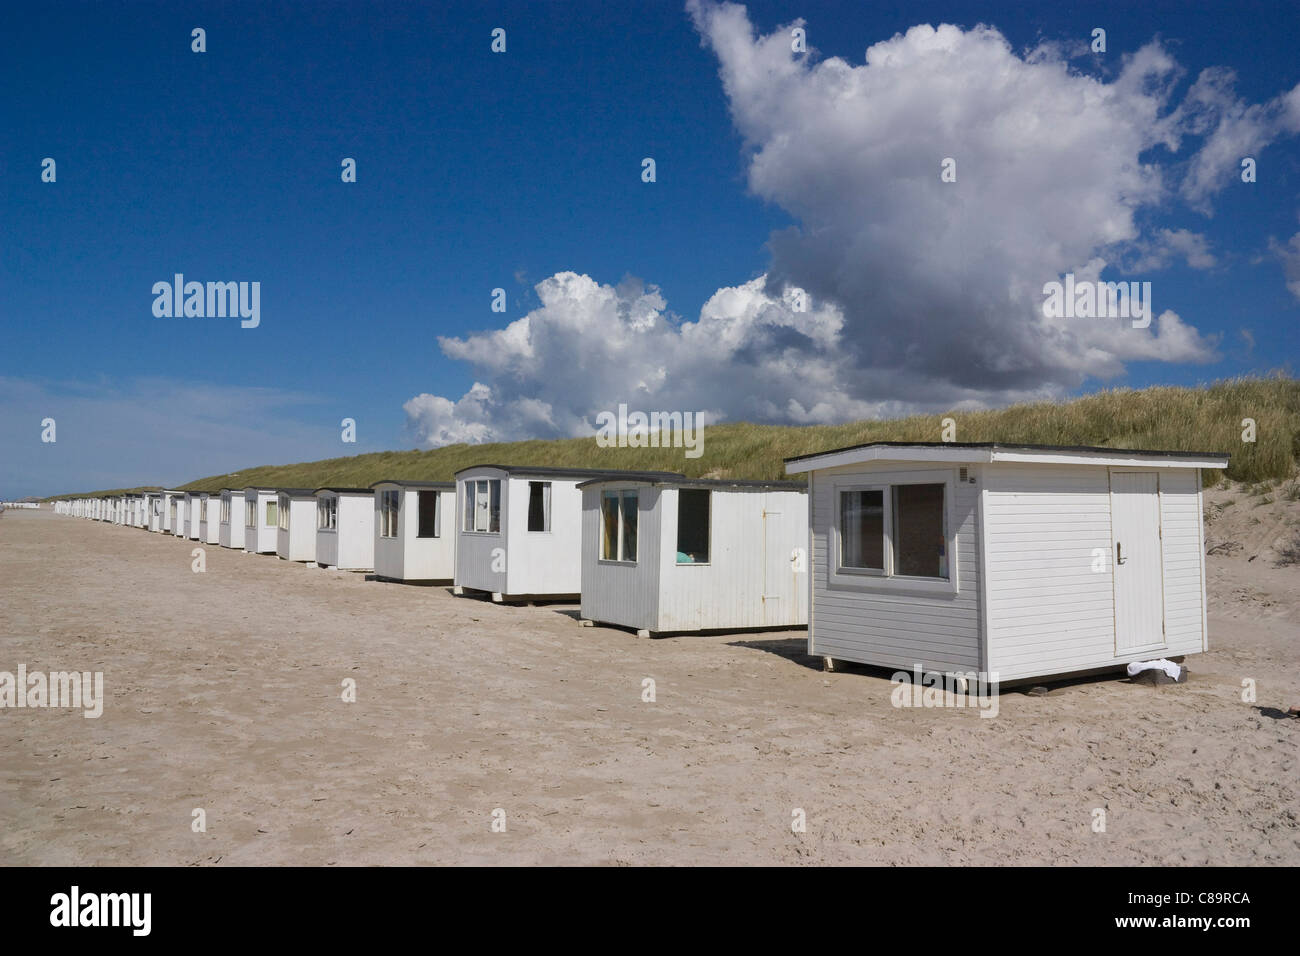 Denmark, View of dressing cabins lined up on beach - Stock Image